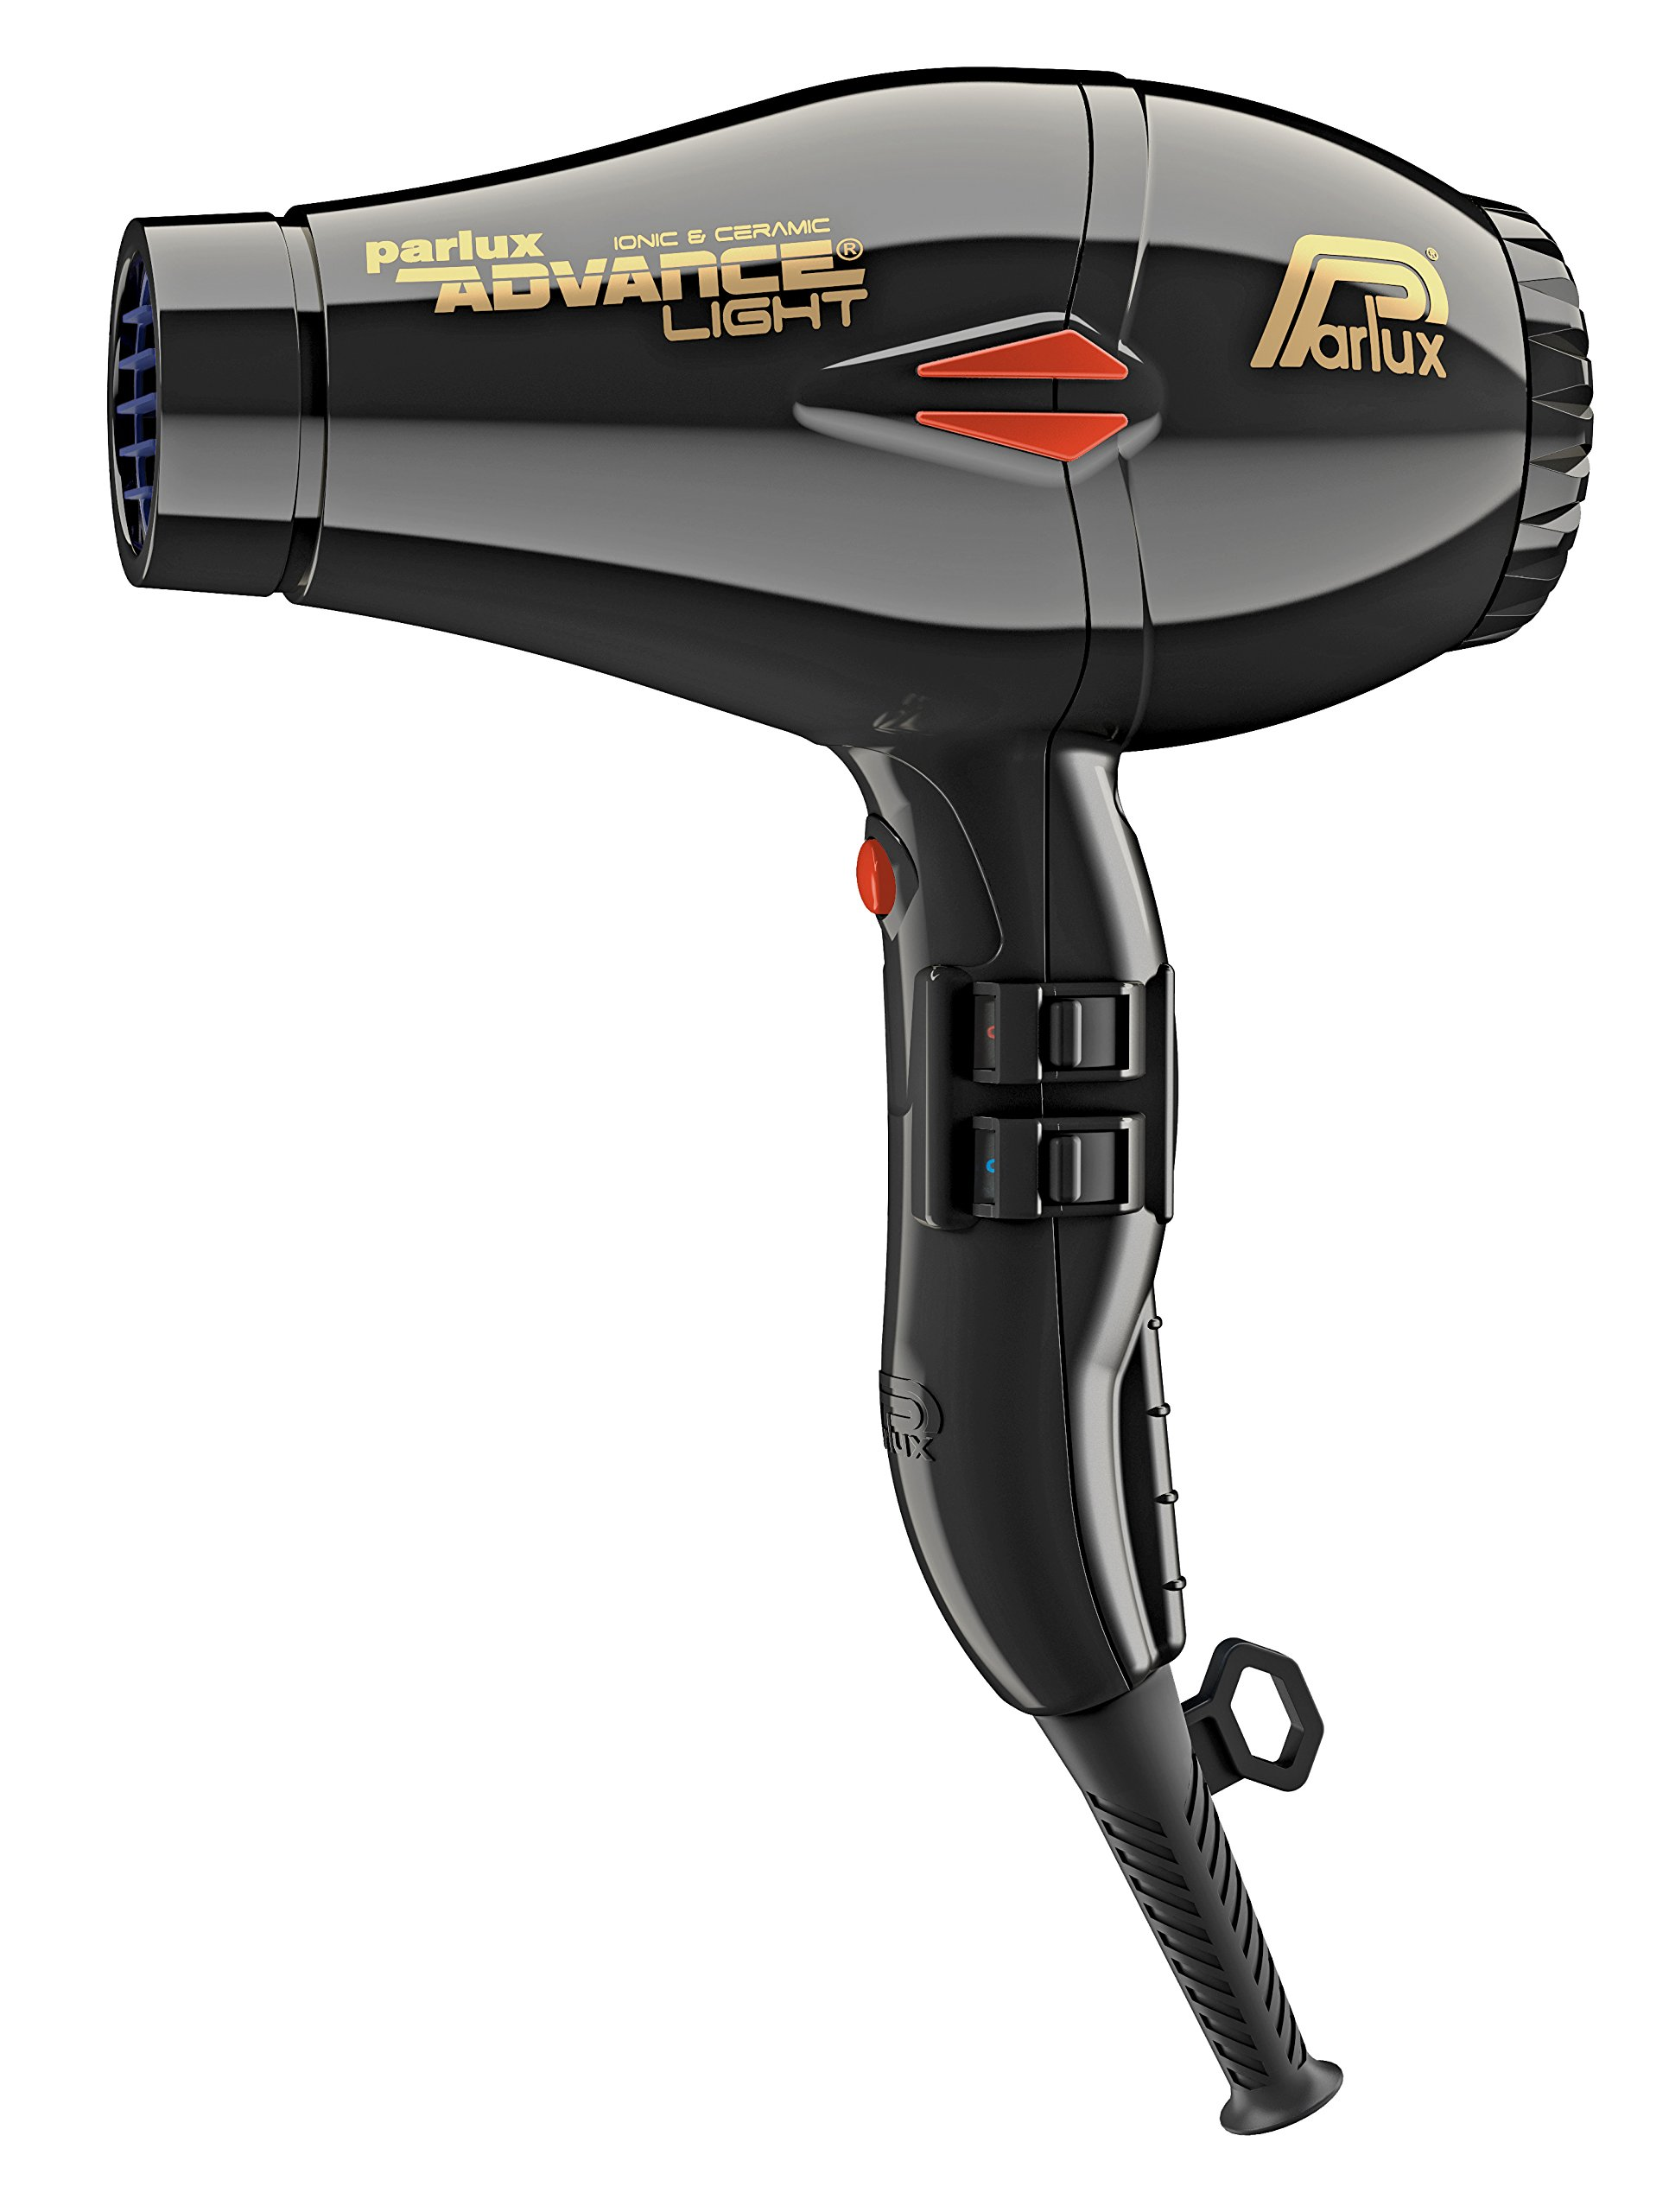 Parlux Advance Light Ionic & Ceramic Hair Dryer, Black